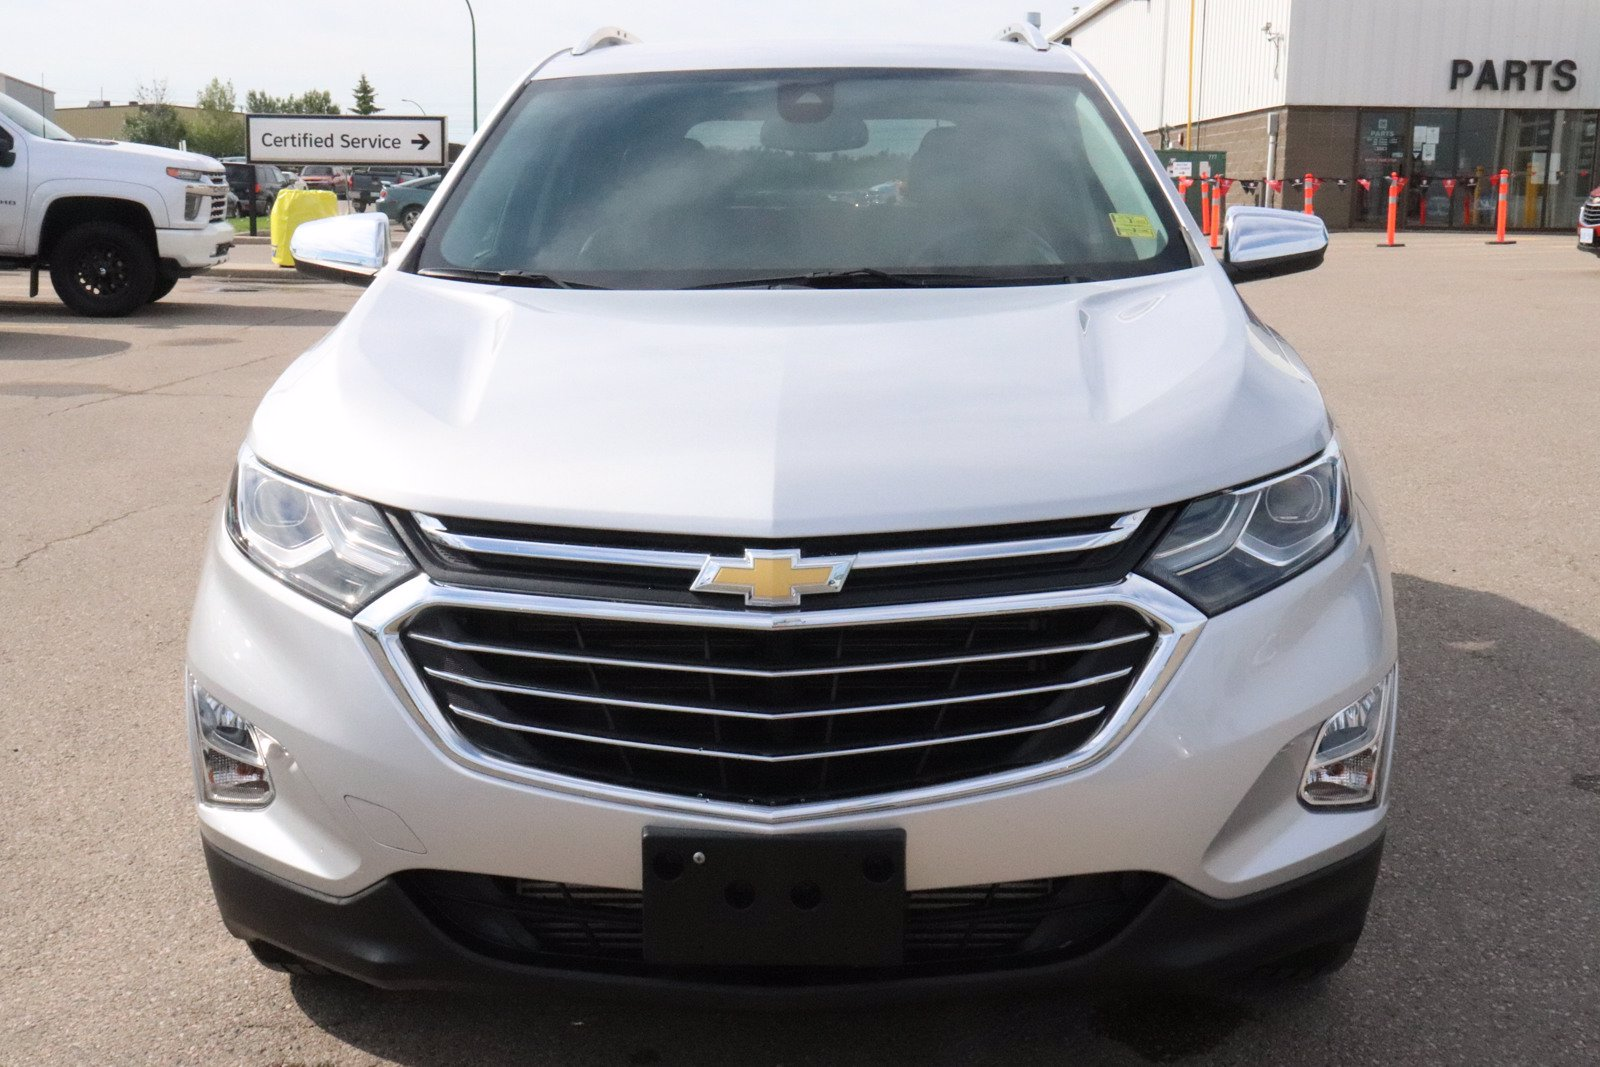 Certified Pre-Owned 2020 Chevrolet Equinox Premier - Heated Leather, Rem Start, Pwr Lift Gate, Back Up Camera